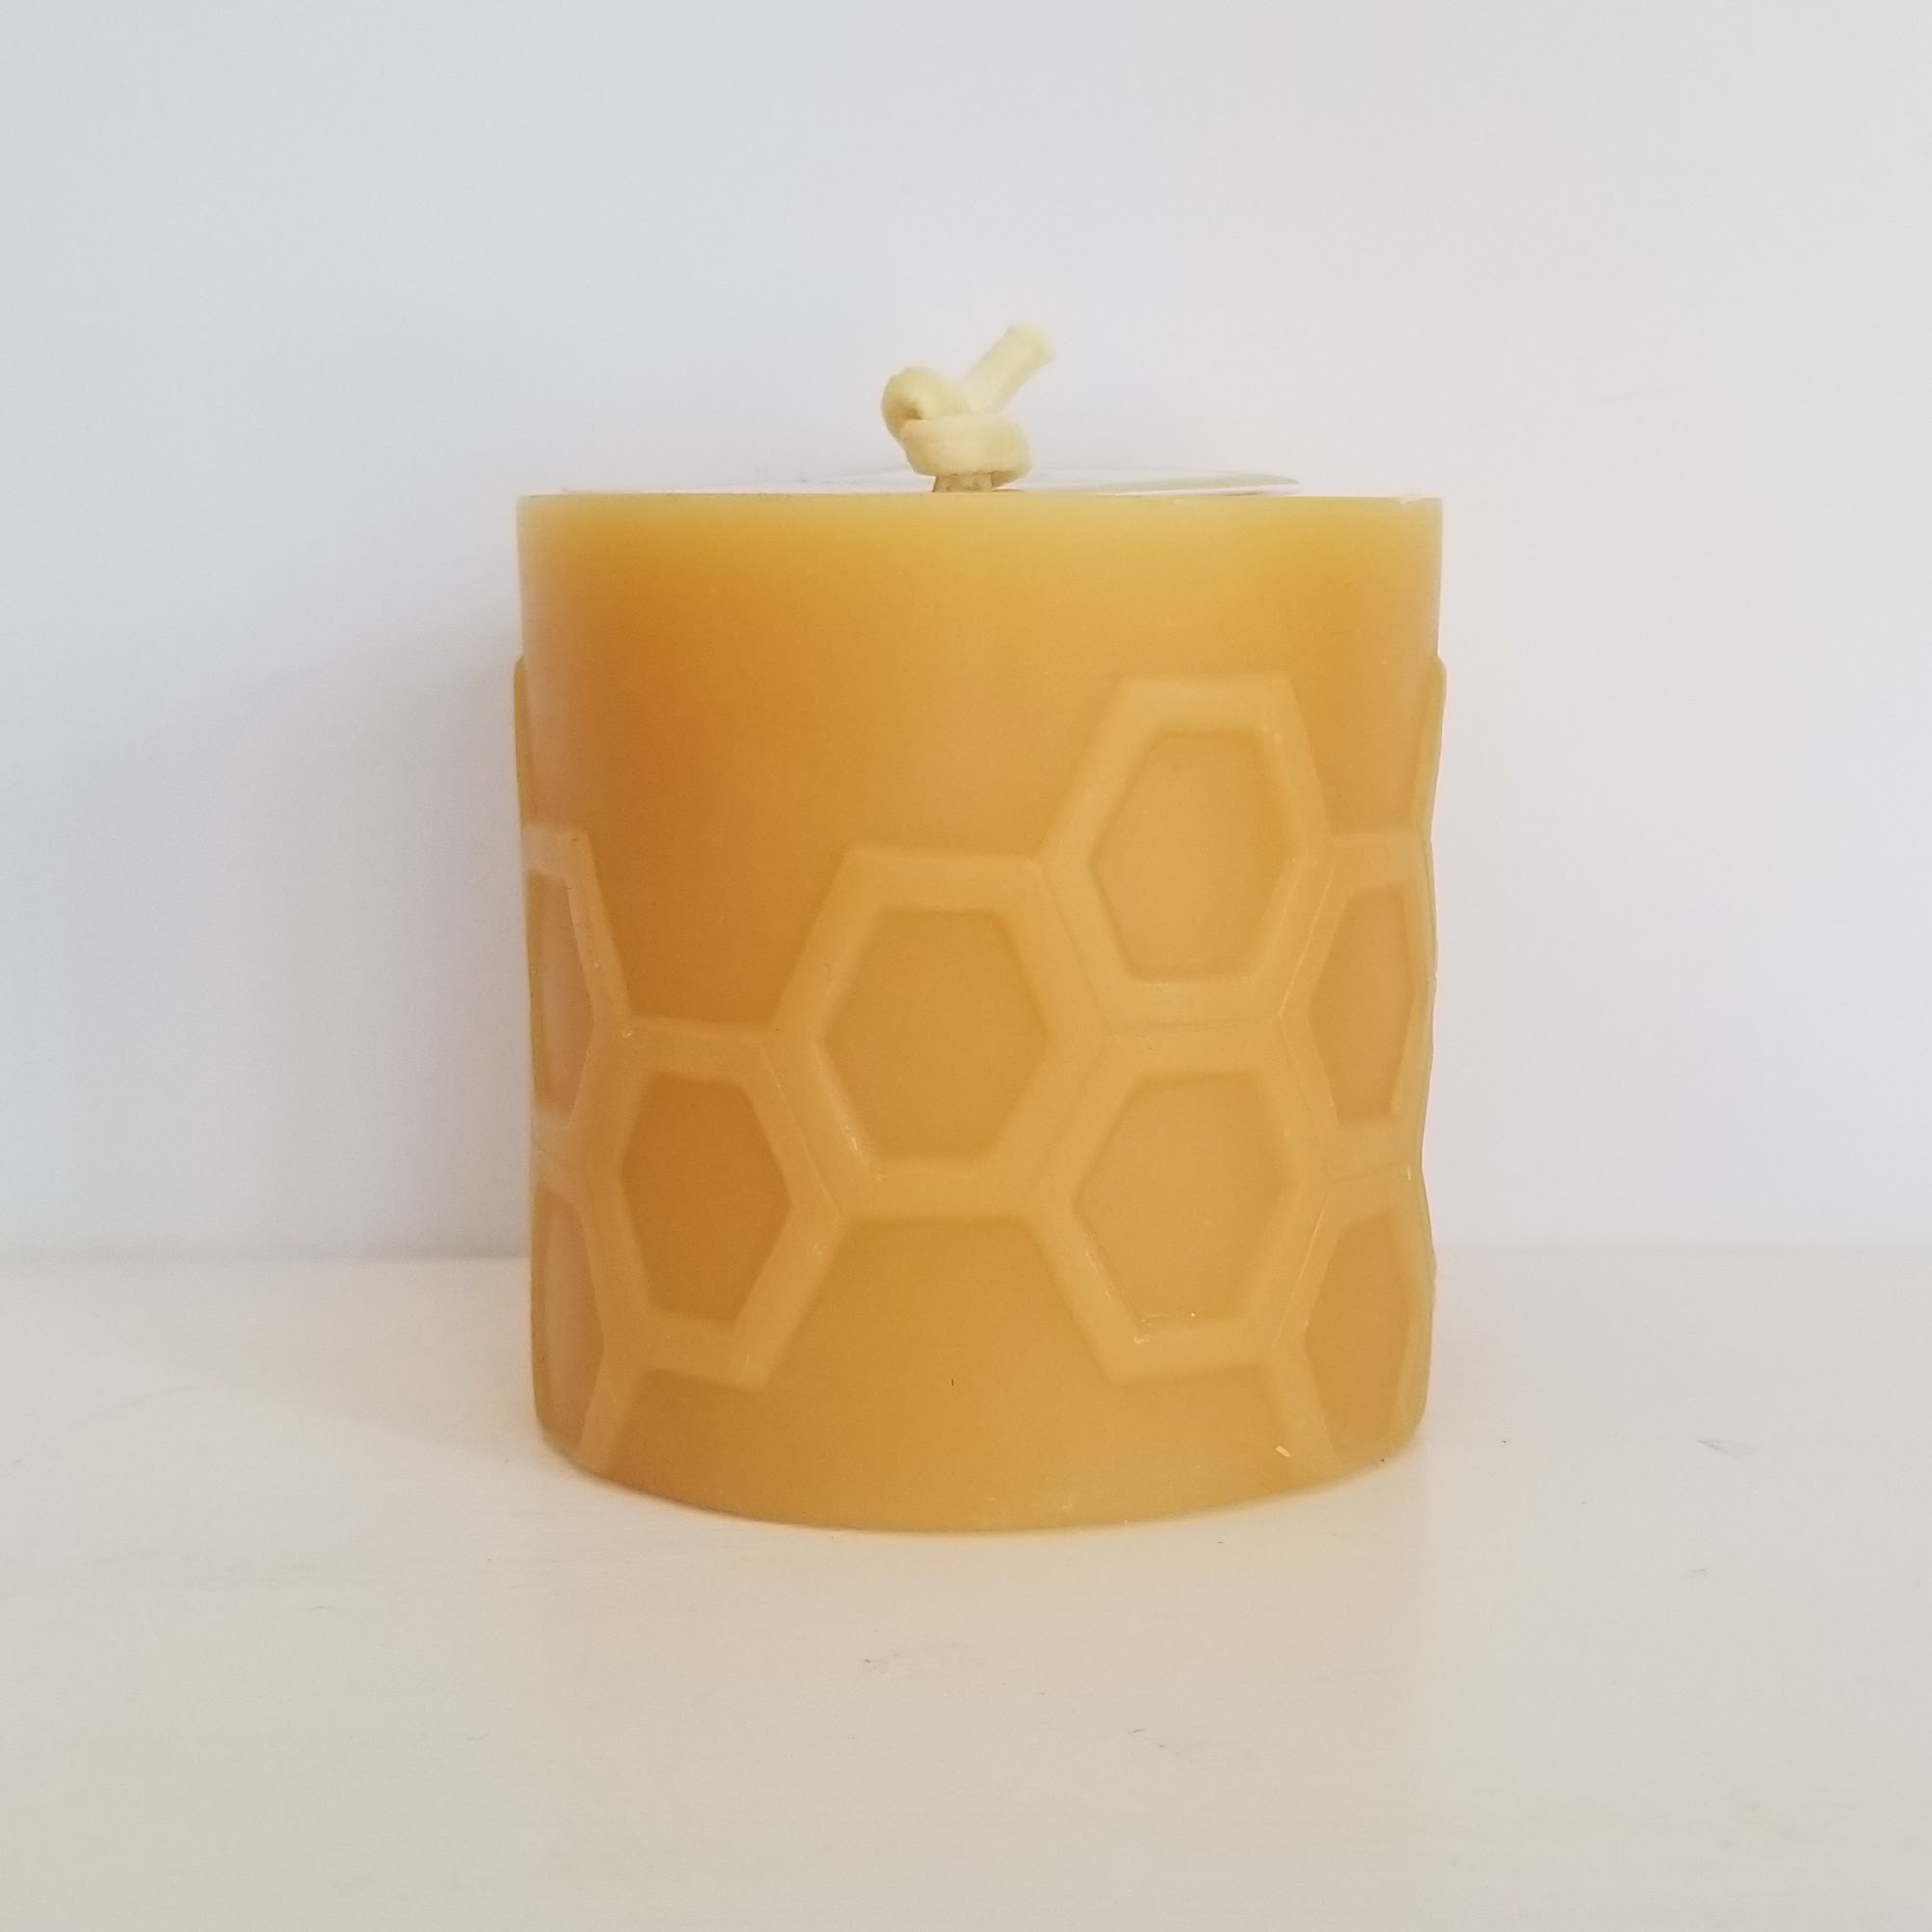 Bees Wax Works Beeswax Hex 3.0 Pillar Candle 35-45